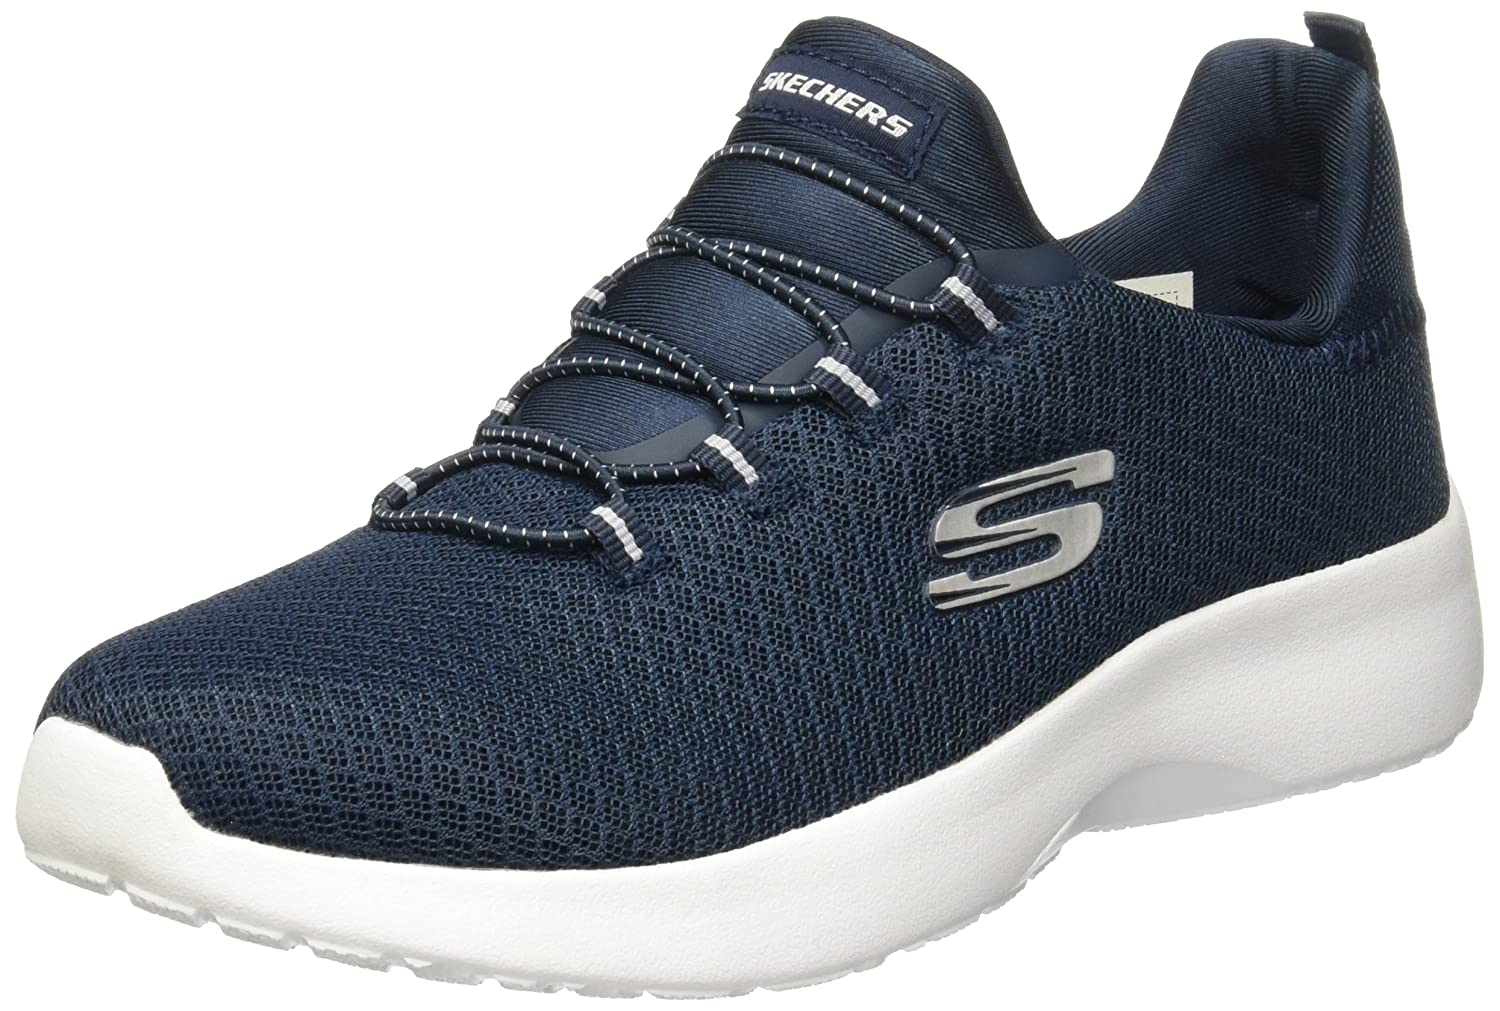 Skechers Women's Summits Sneaker B01N13A2A5 9 B(M) US|Navy